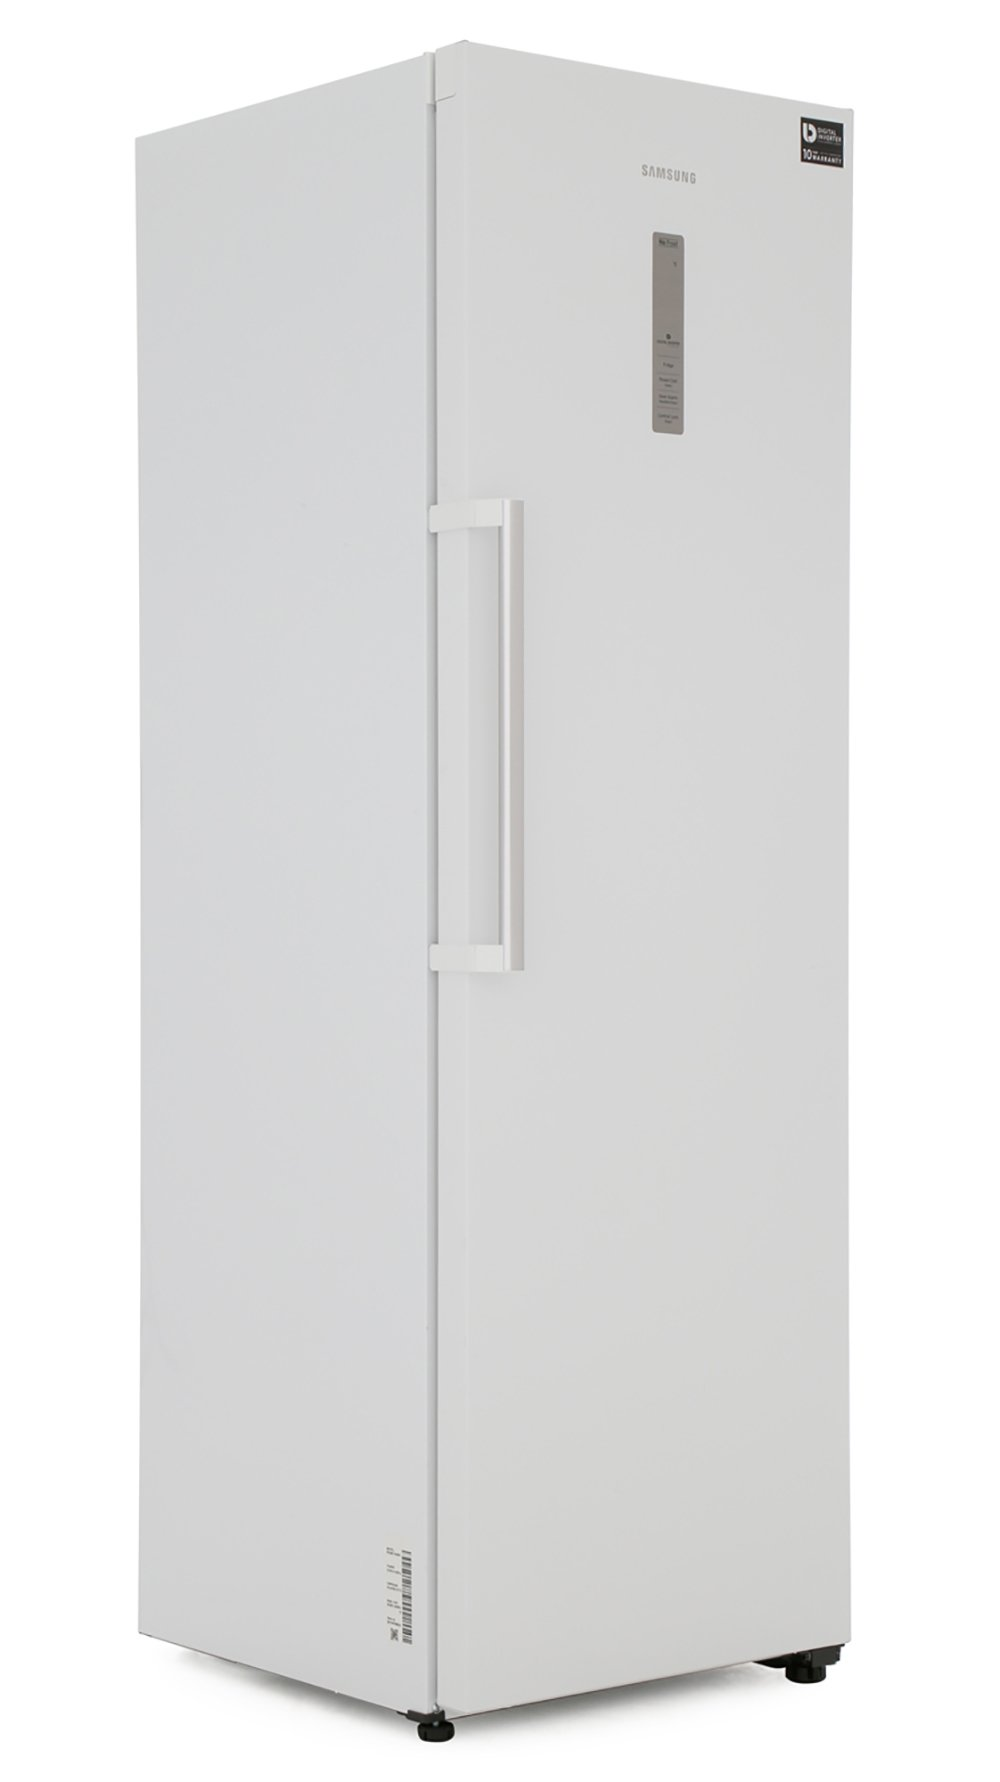 Samsung RR39M7140WW Tall Larder Fridge With All-Around Cooling